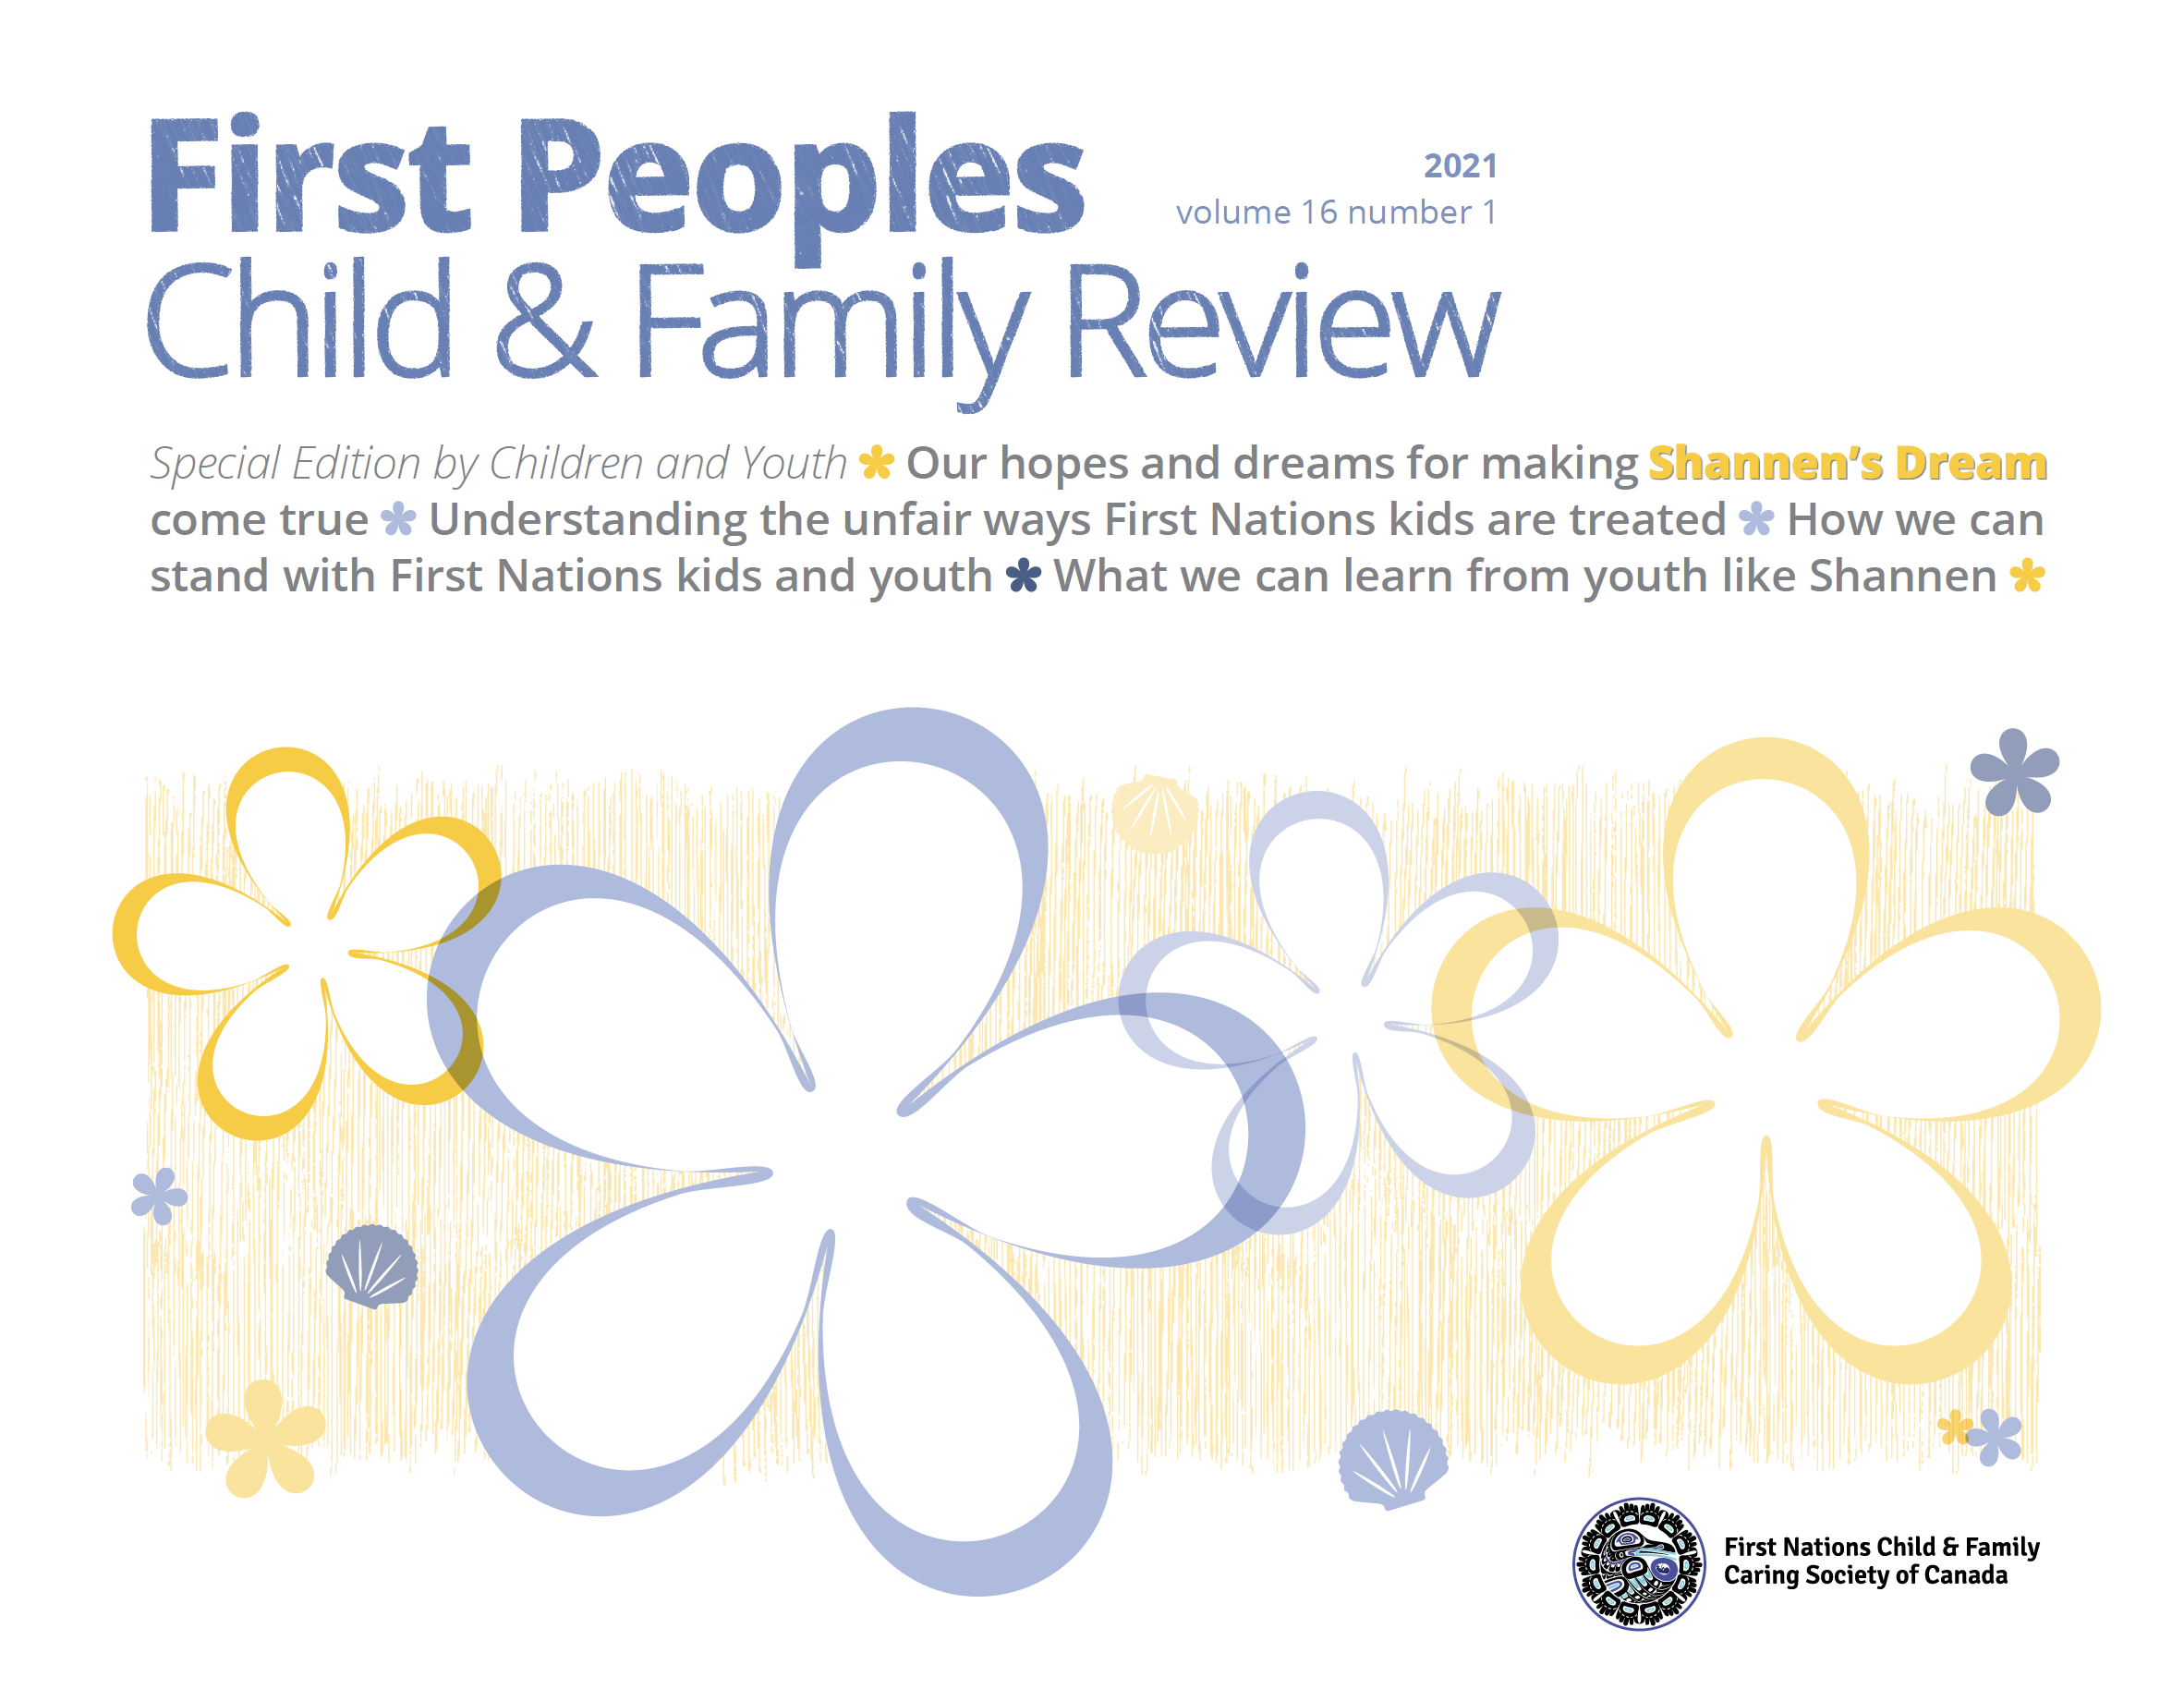 Volume 16, Issue 1 (2021) of the First Peoples Child & Family Review